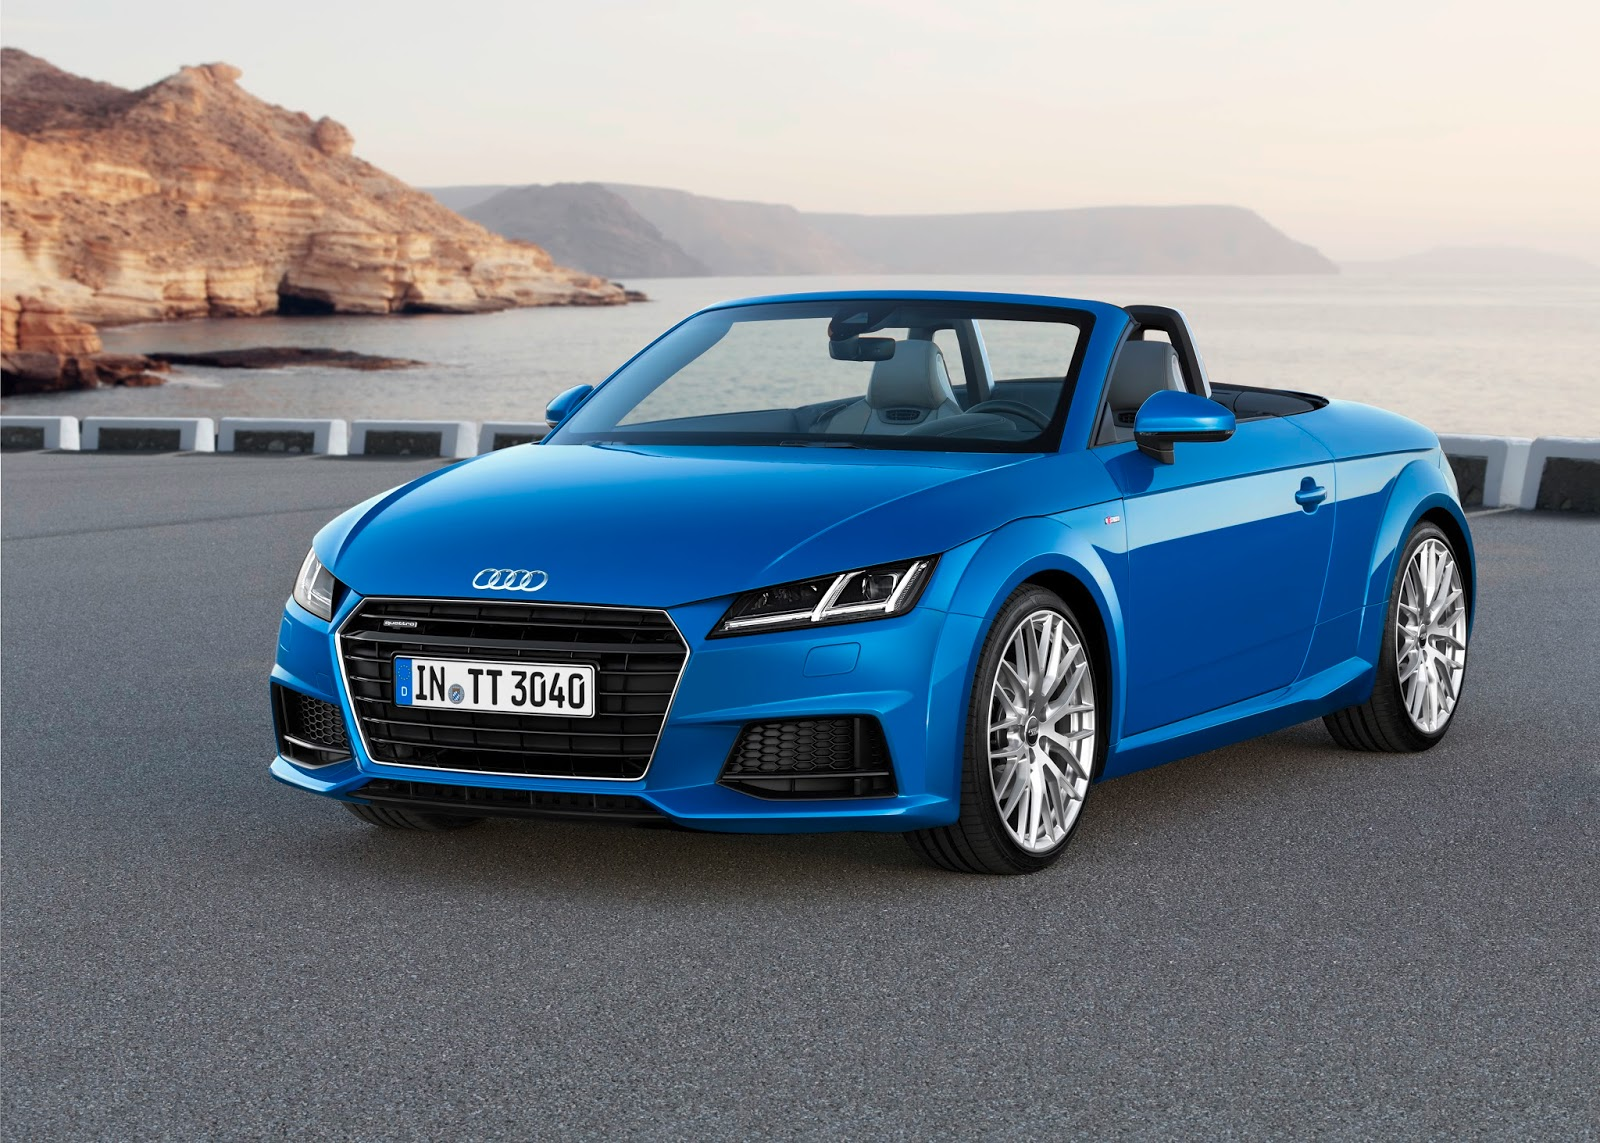 Third Generation Audi TT Roadster